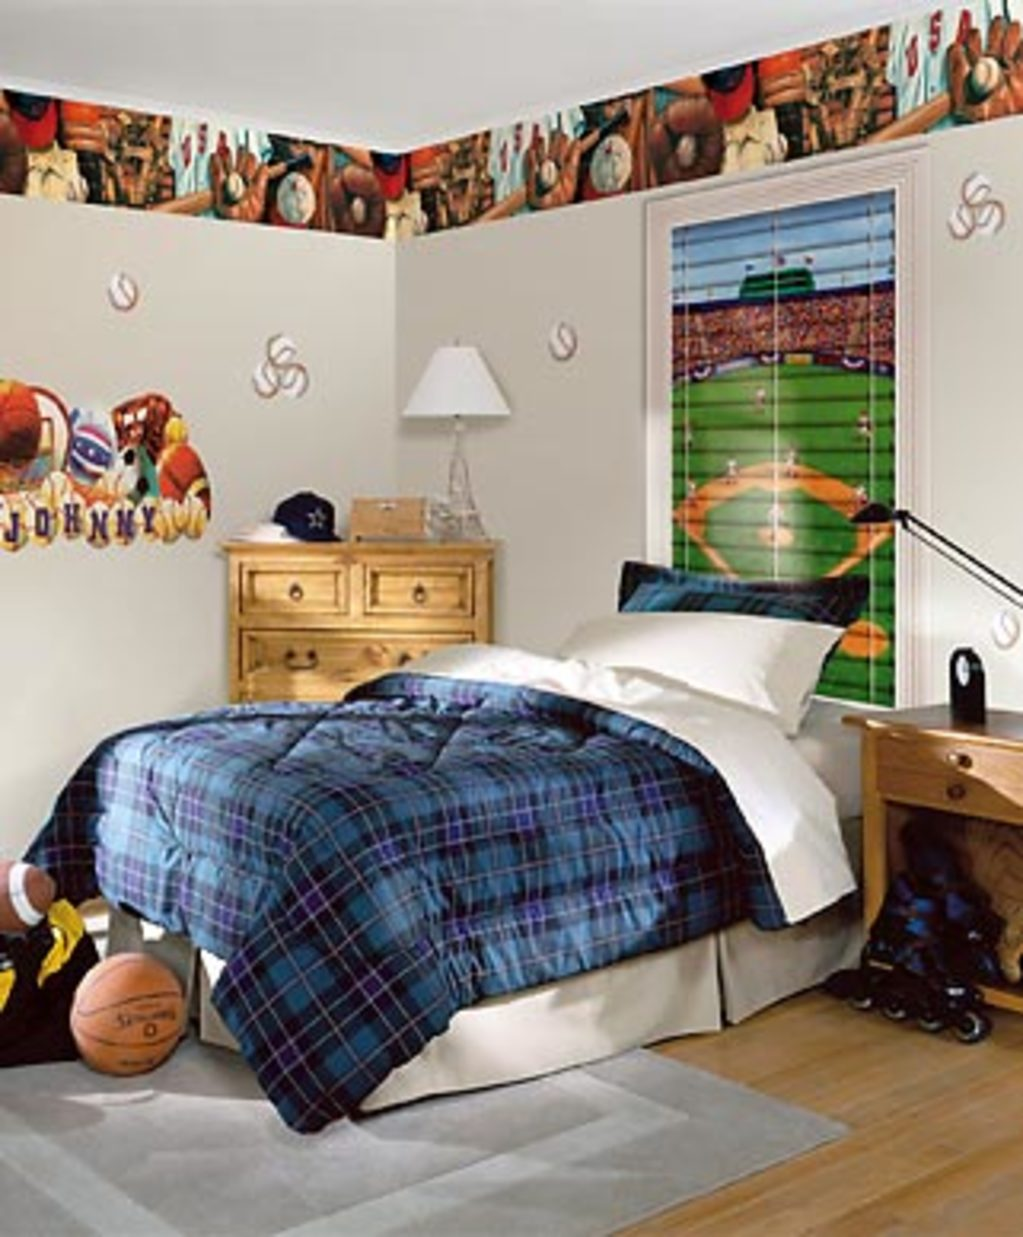 Castle Wallpaper & Blinds - Wallpaper in Kids' Room